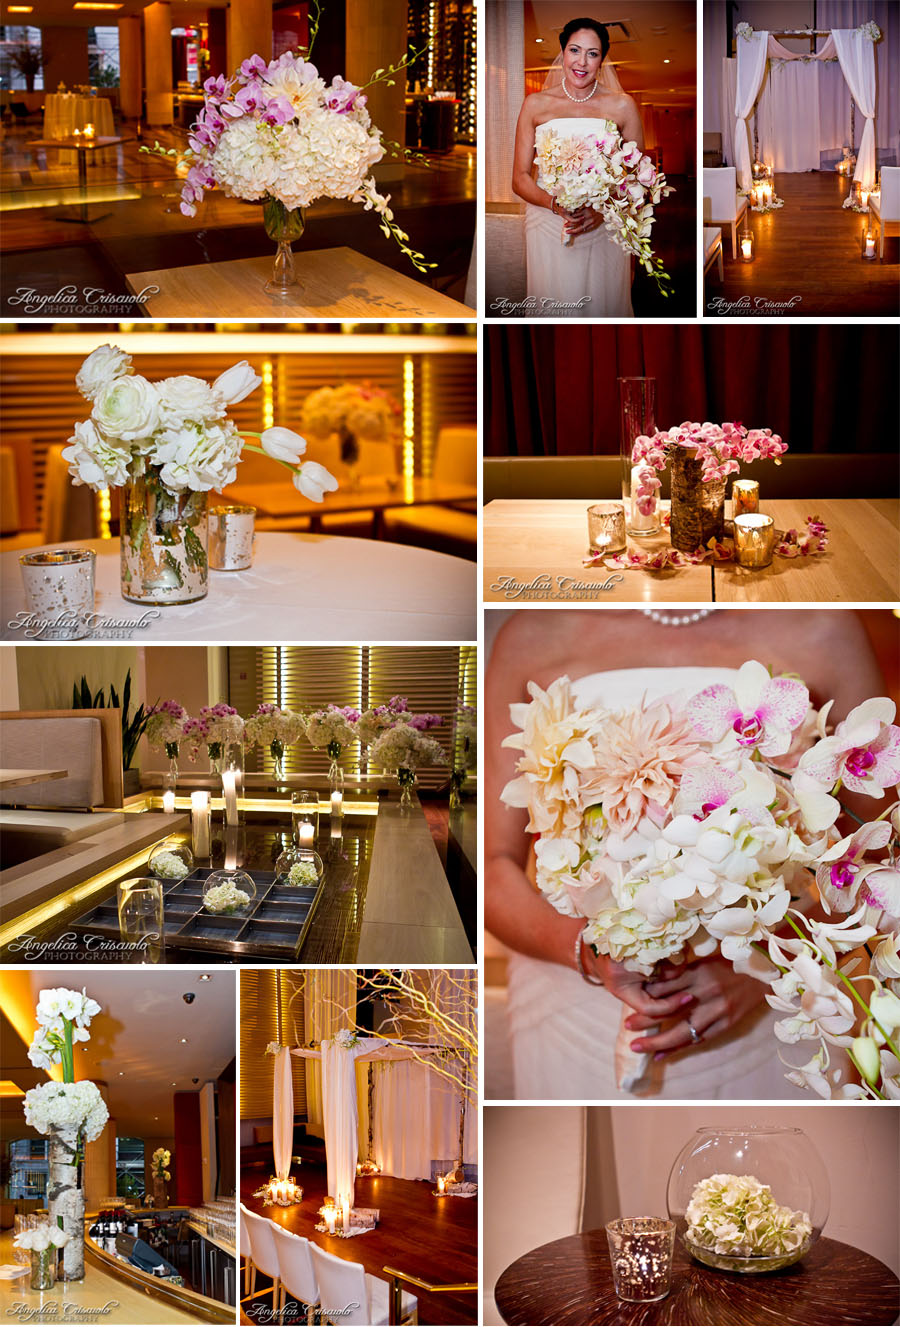 2011-10-22RougeTomateWeddingCollageWEB.jpg